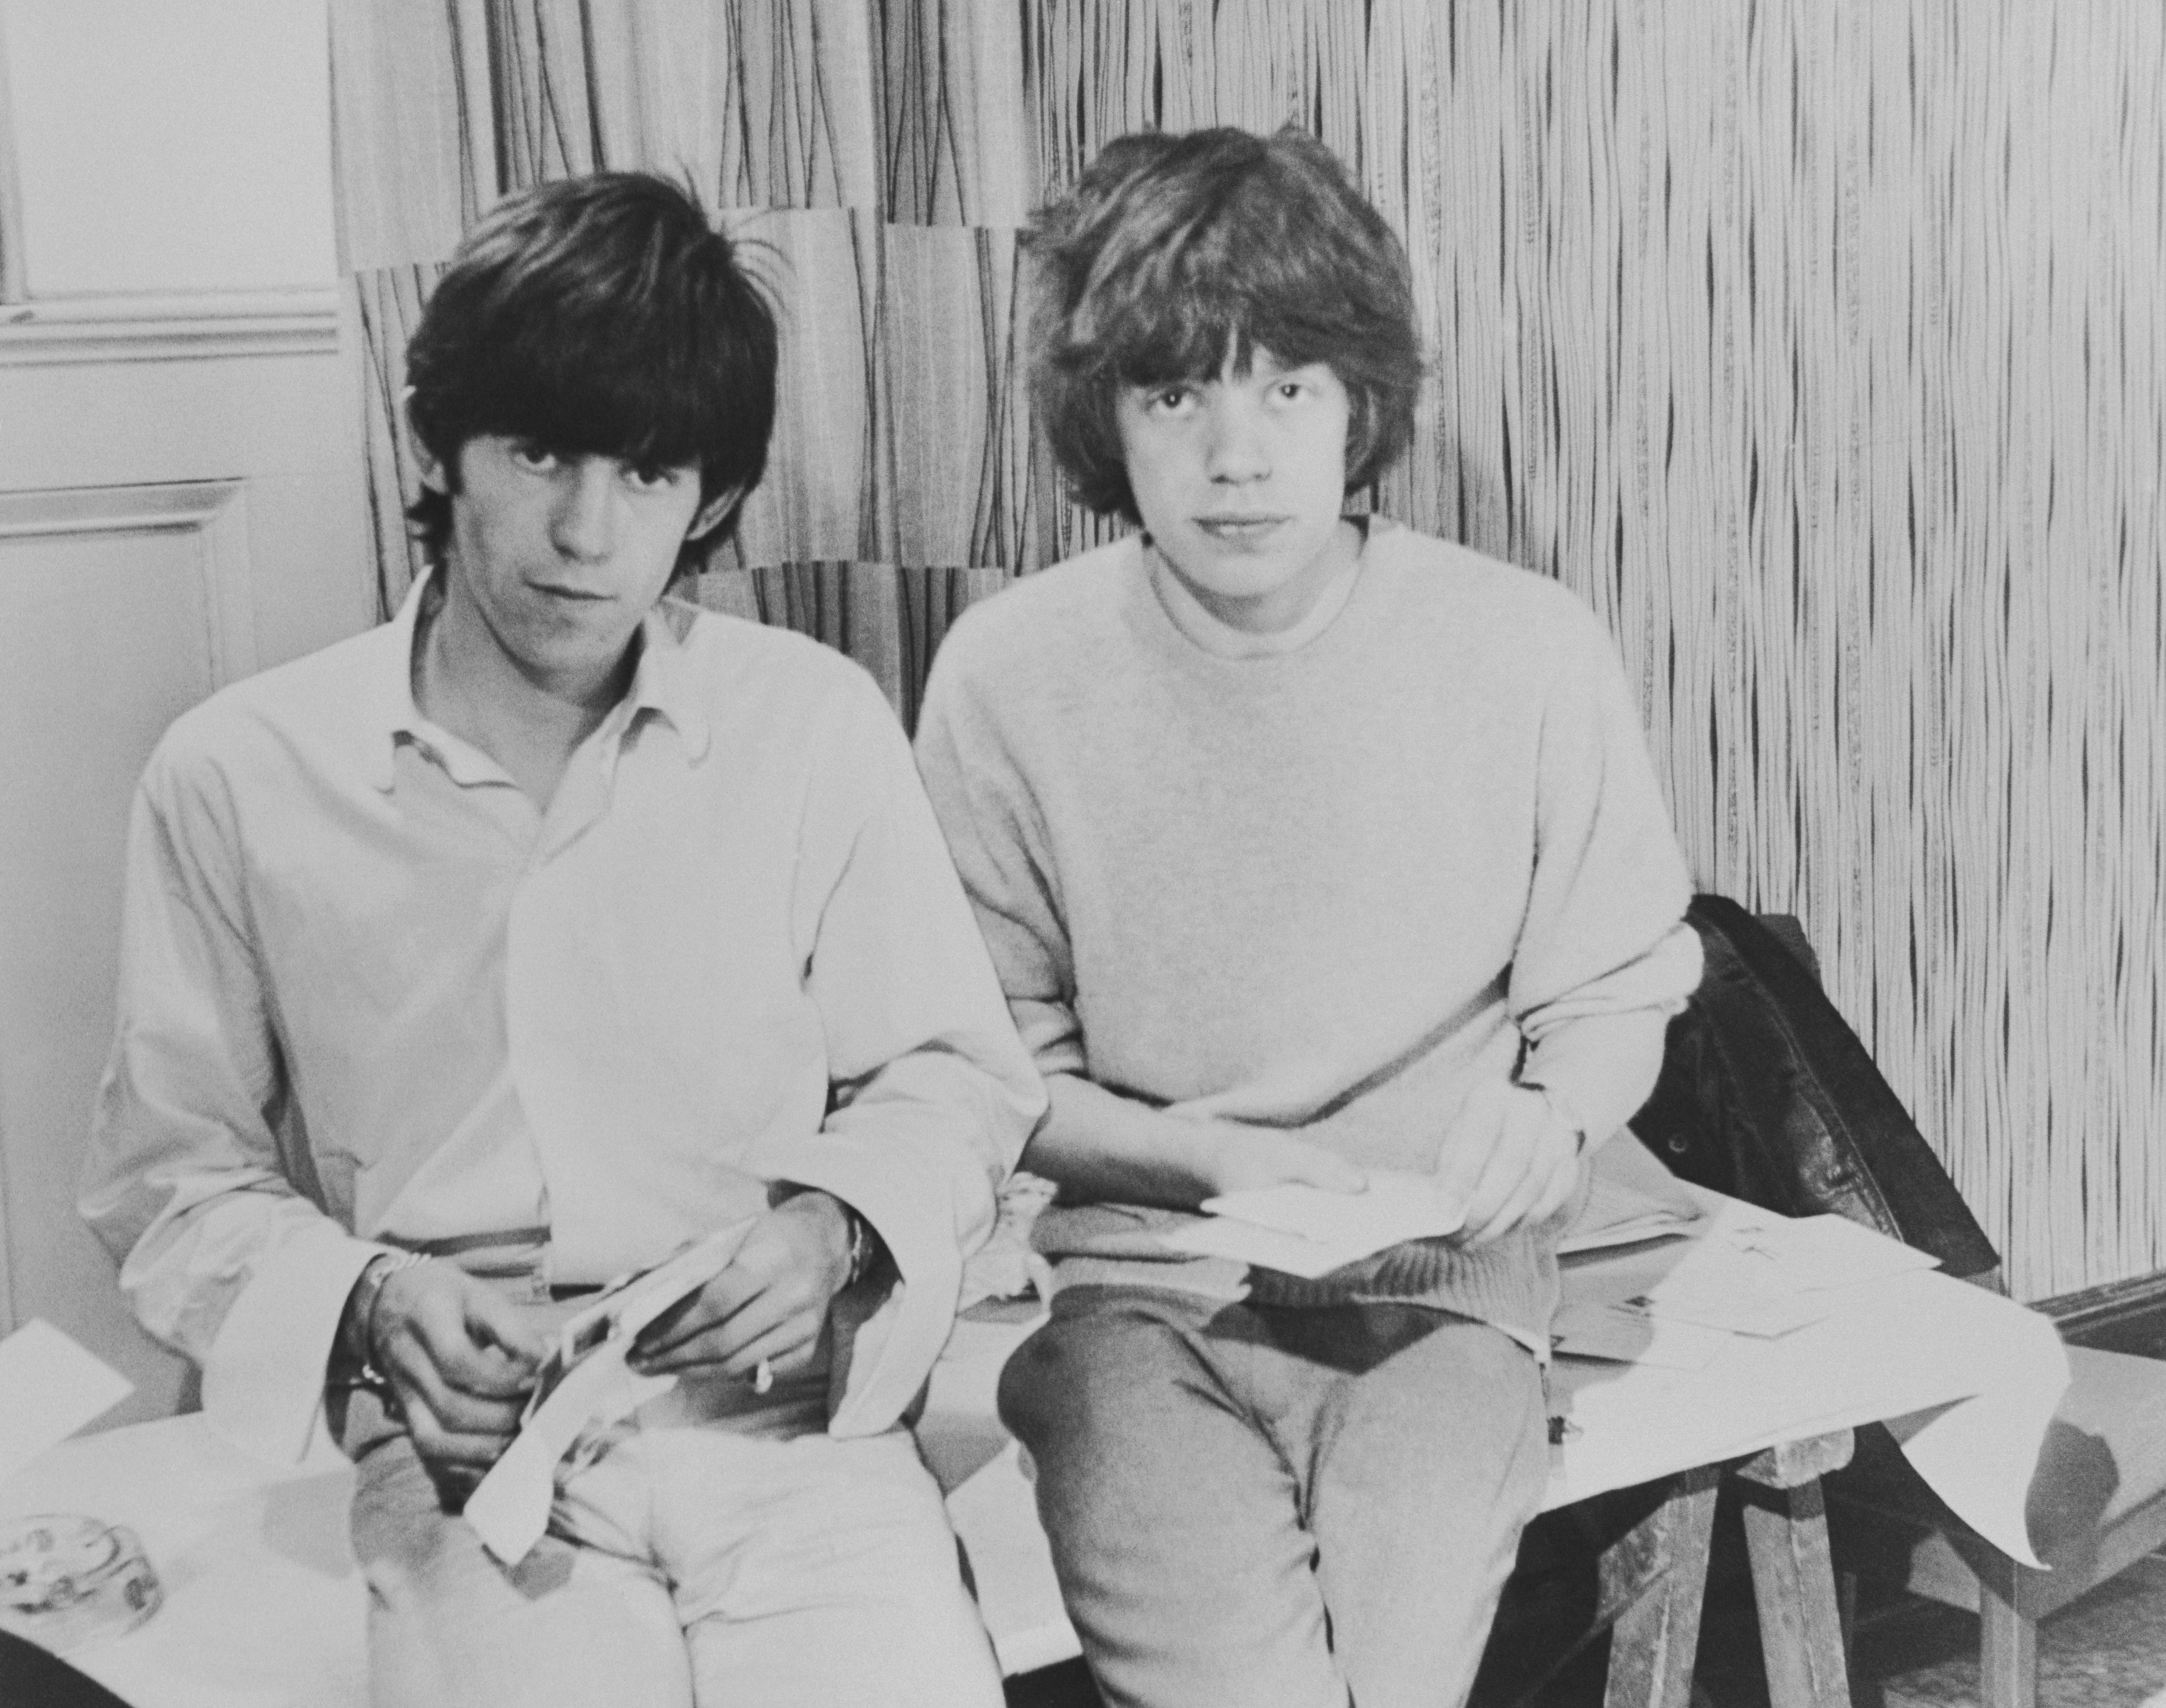 Rolling Stones singer Mick Jagger and guitarist Keith Richards opening fan mail during the early days of the band, circa 1963. (Photo by Keystone Features/Hulton Archive/Getty Images)